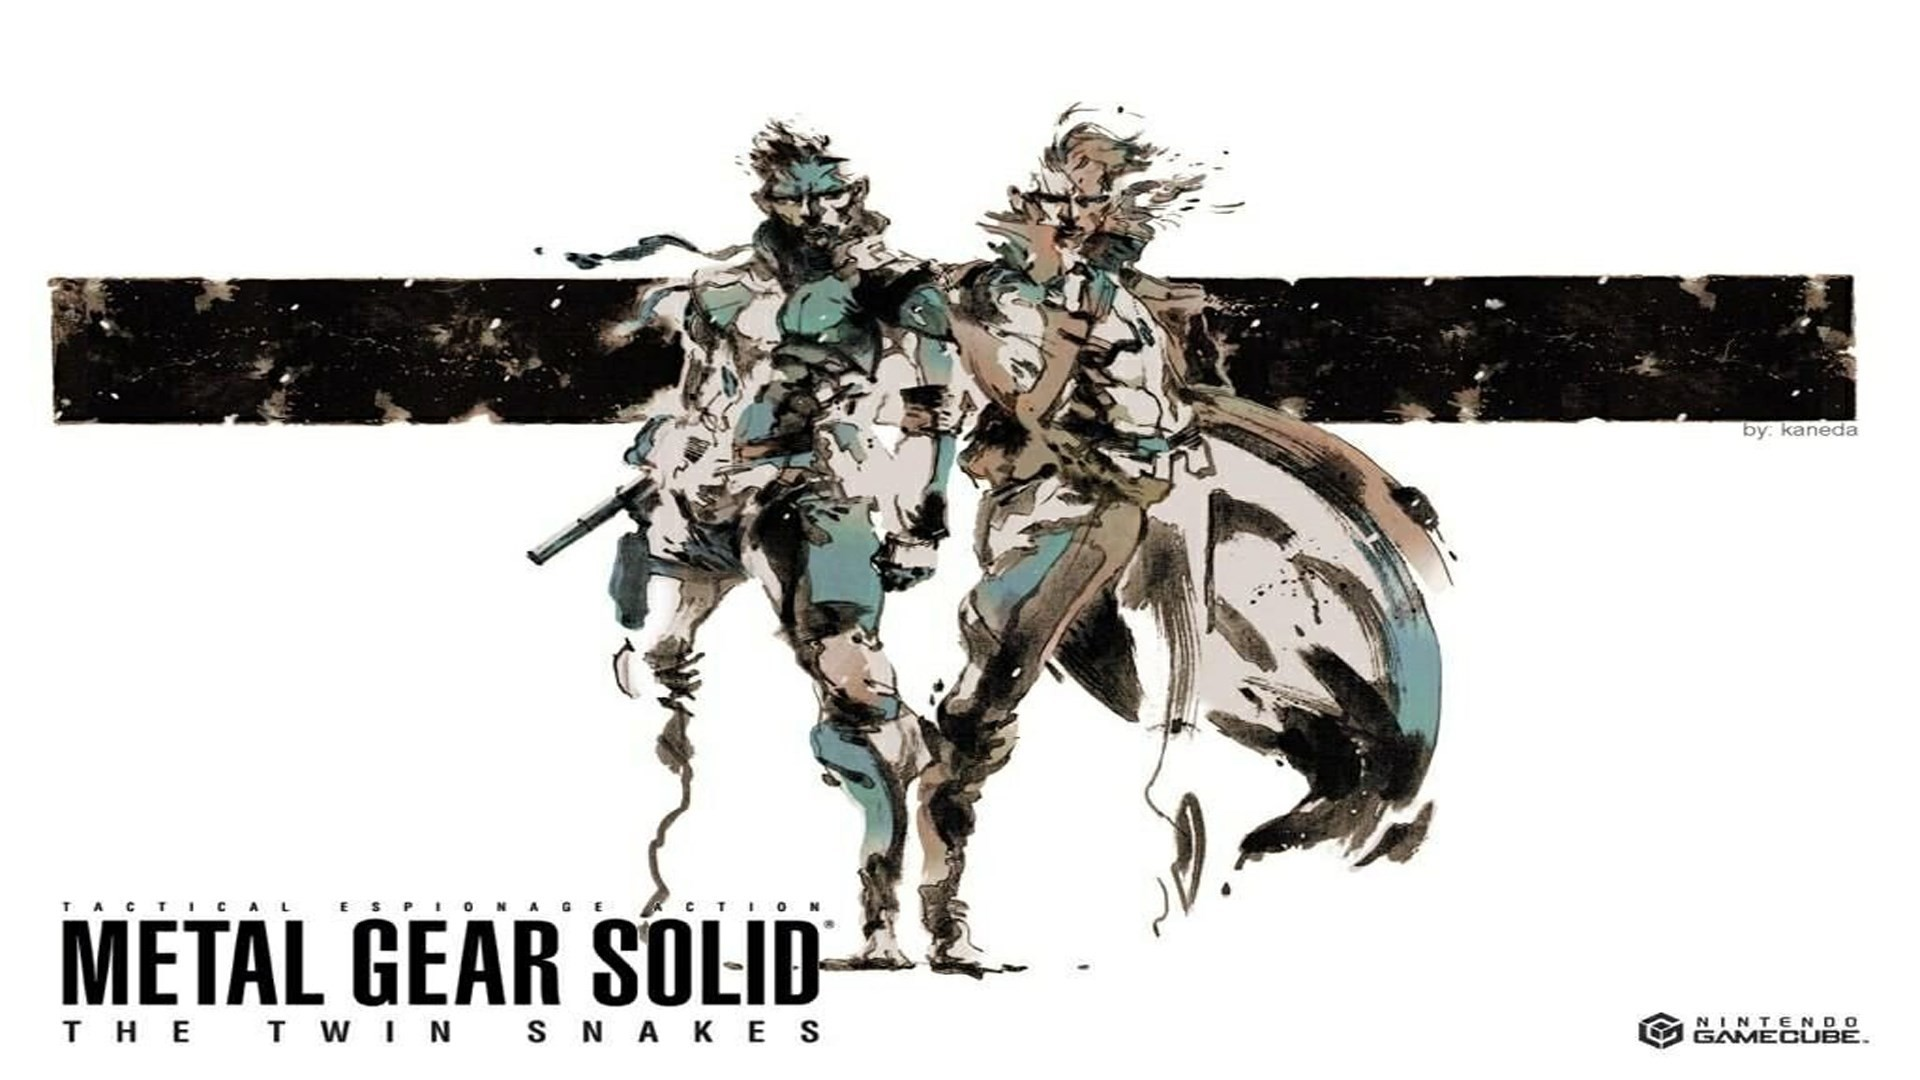 Metal Gear Solid 3 Wallpaper 1920x1080 (73+ images)